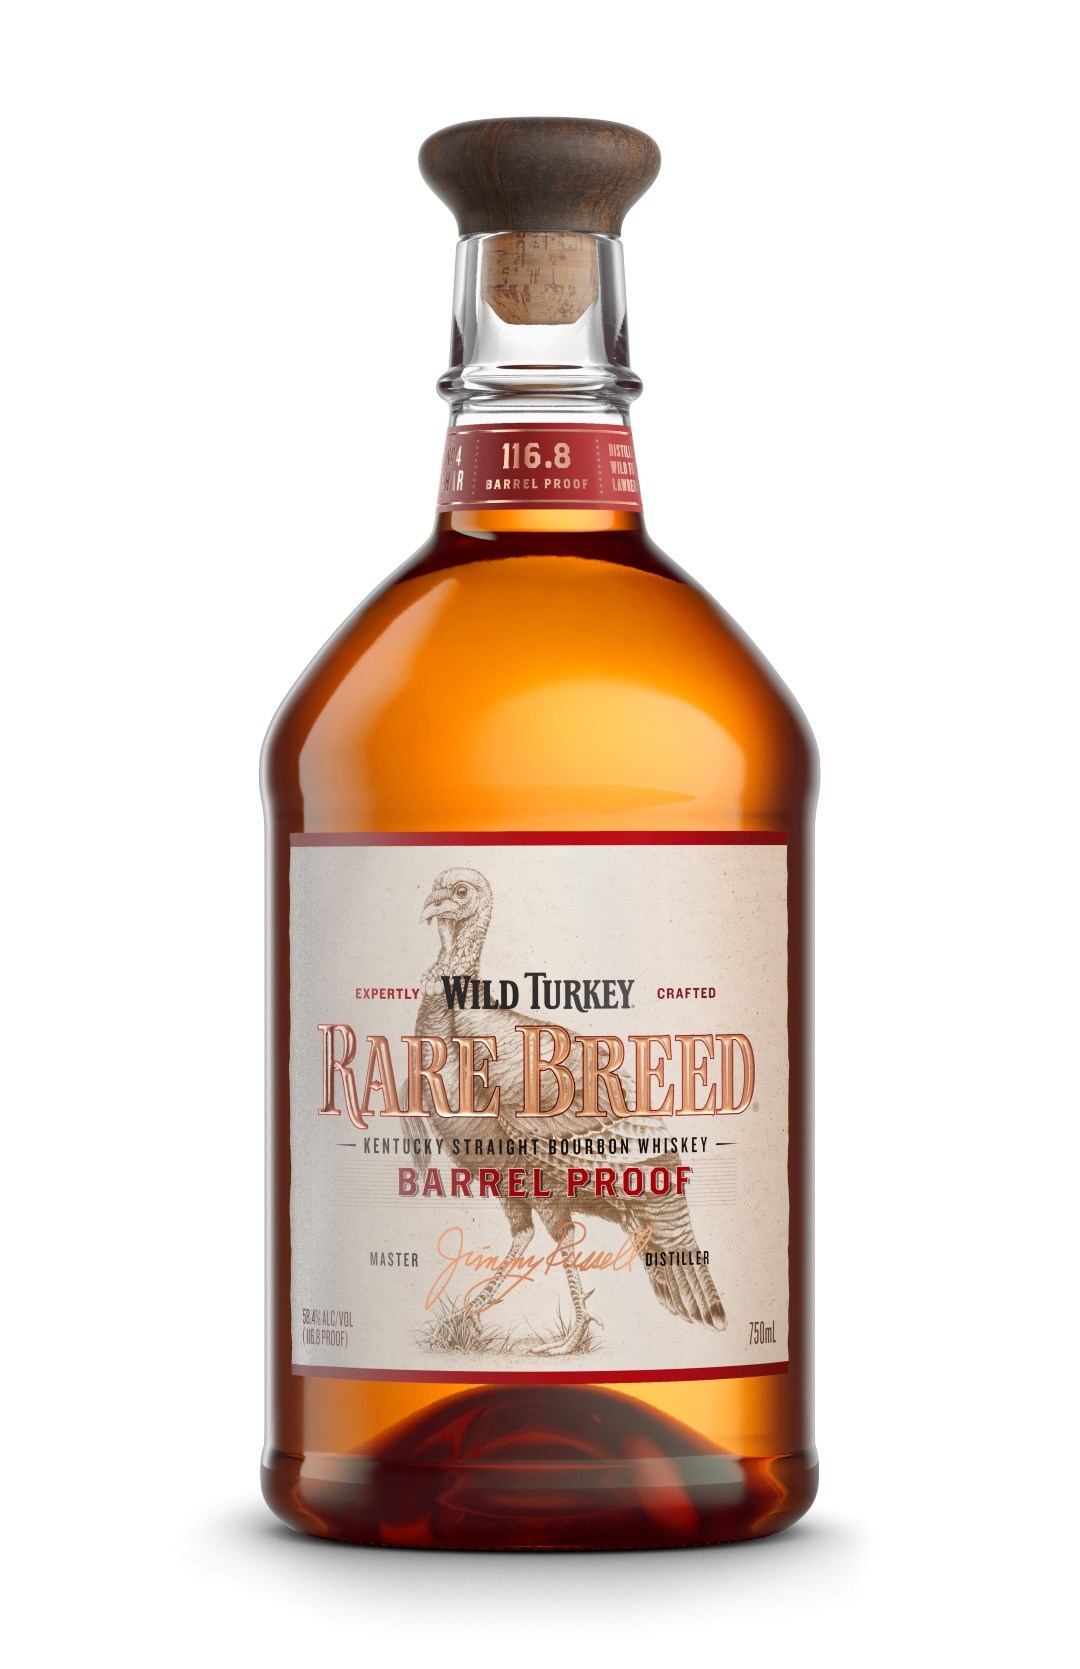 Wild Turkey Rare Breed 116.8